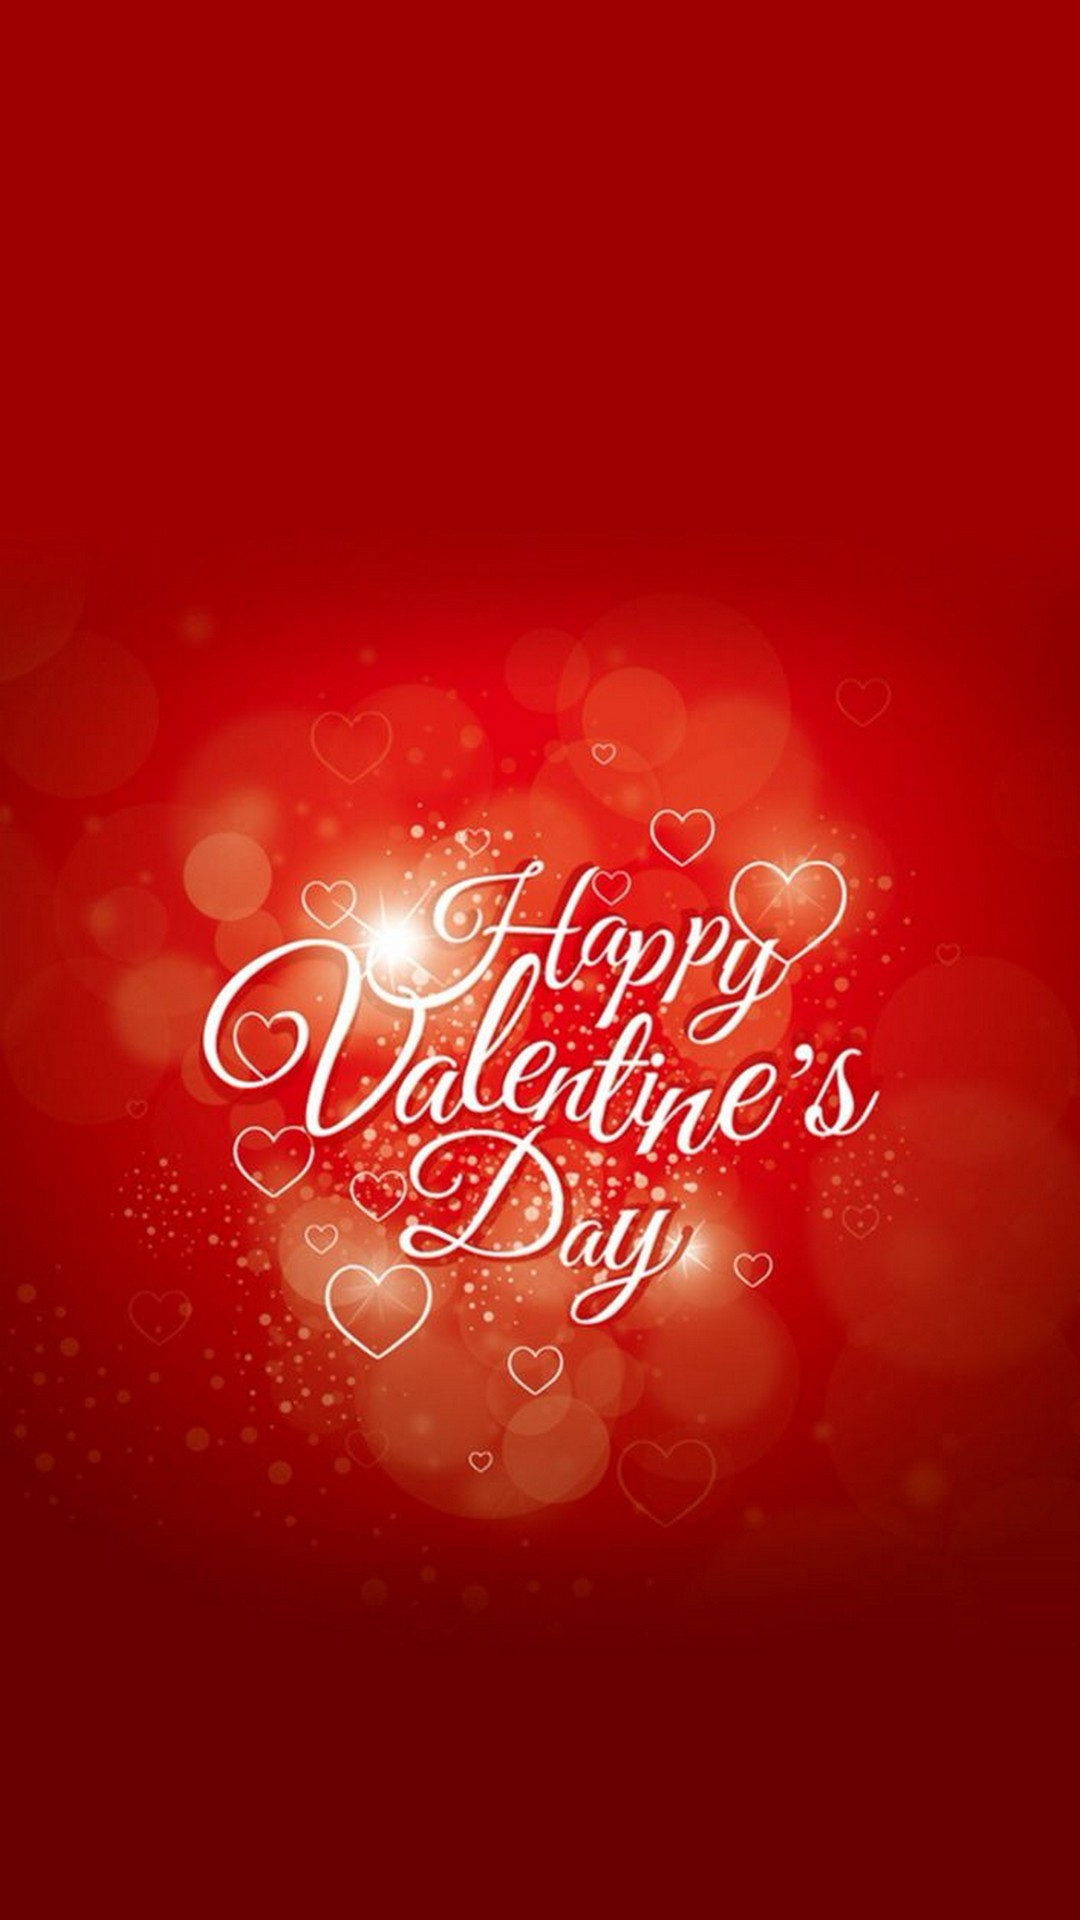 Android Wallpapers HD Happy Valentines Day Image